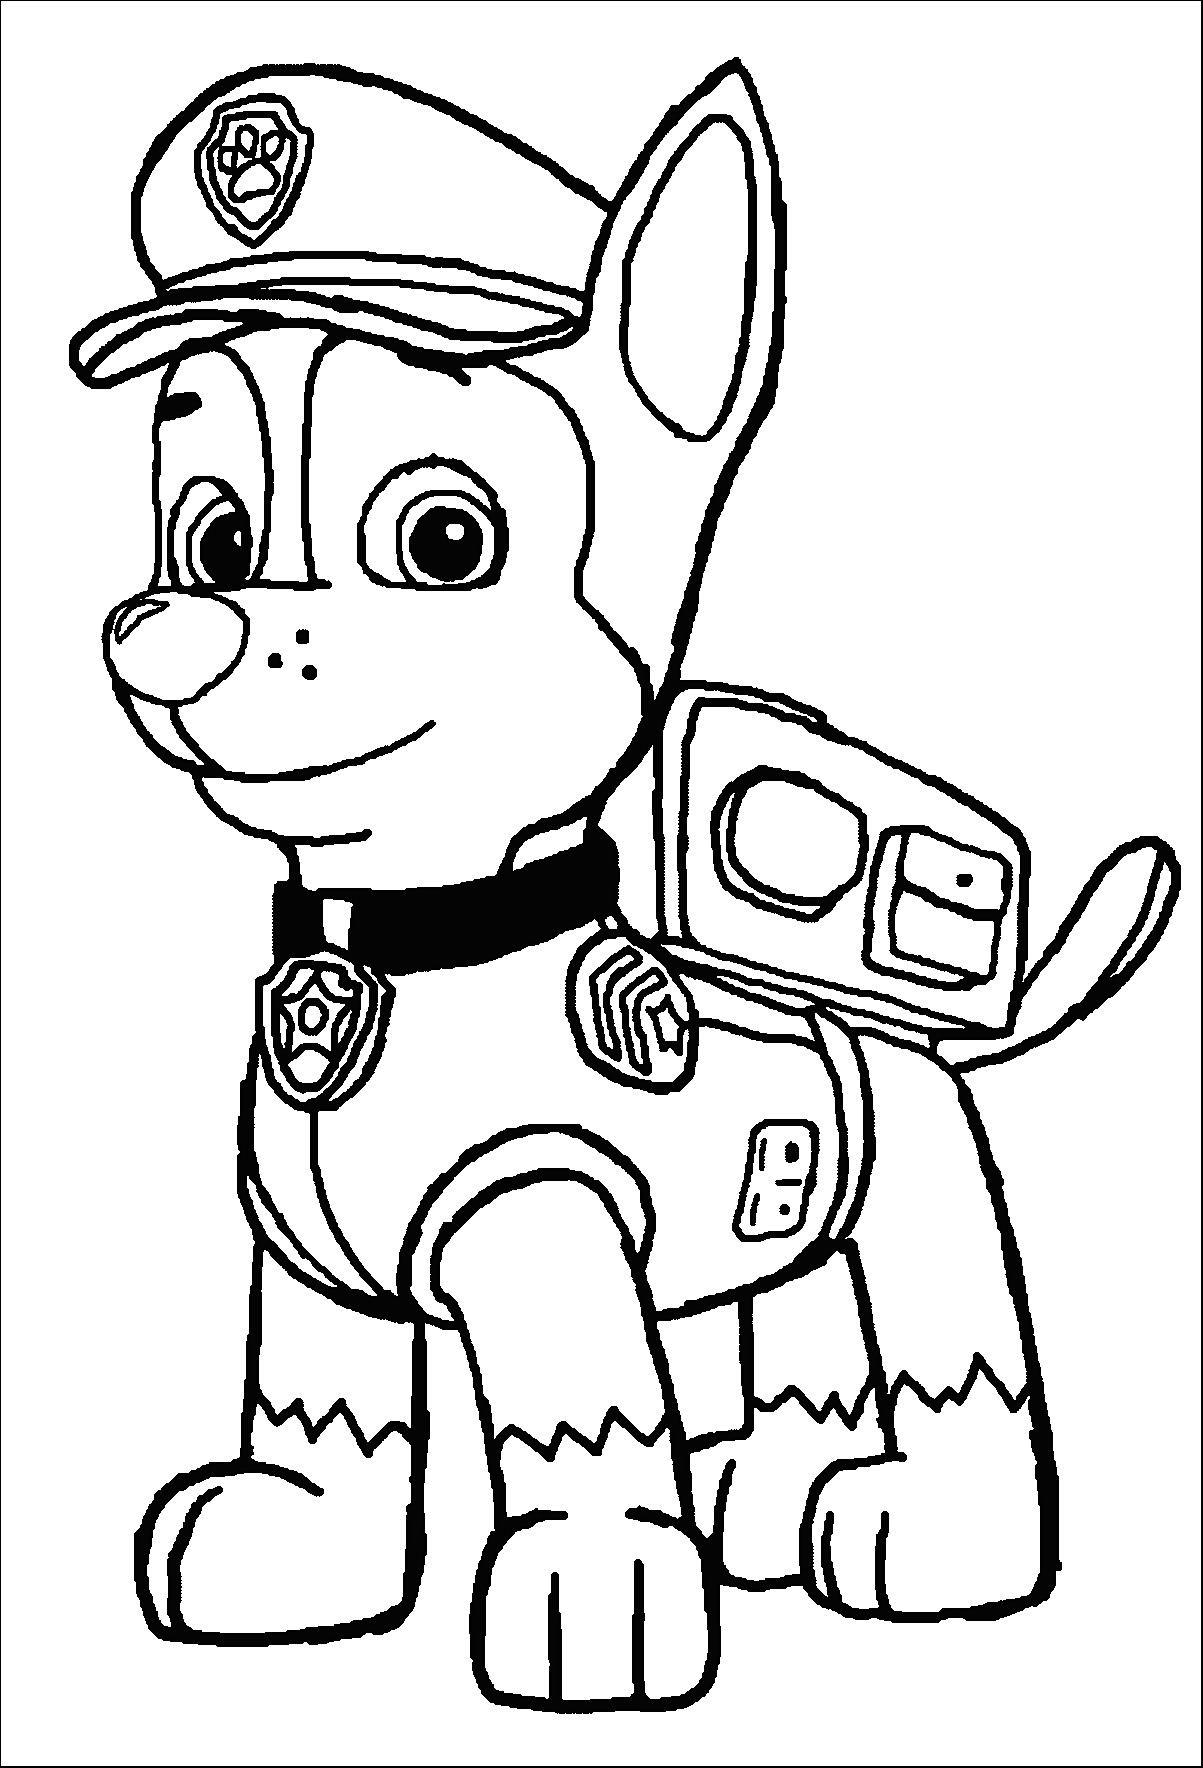 Luxury chase patrol advance. Paw clipart coloring page clip royalty free